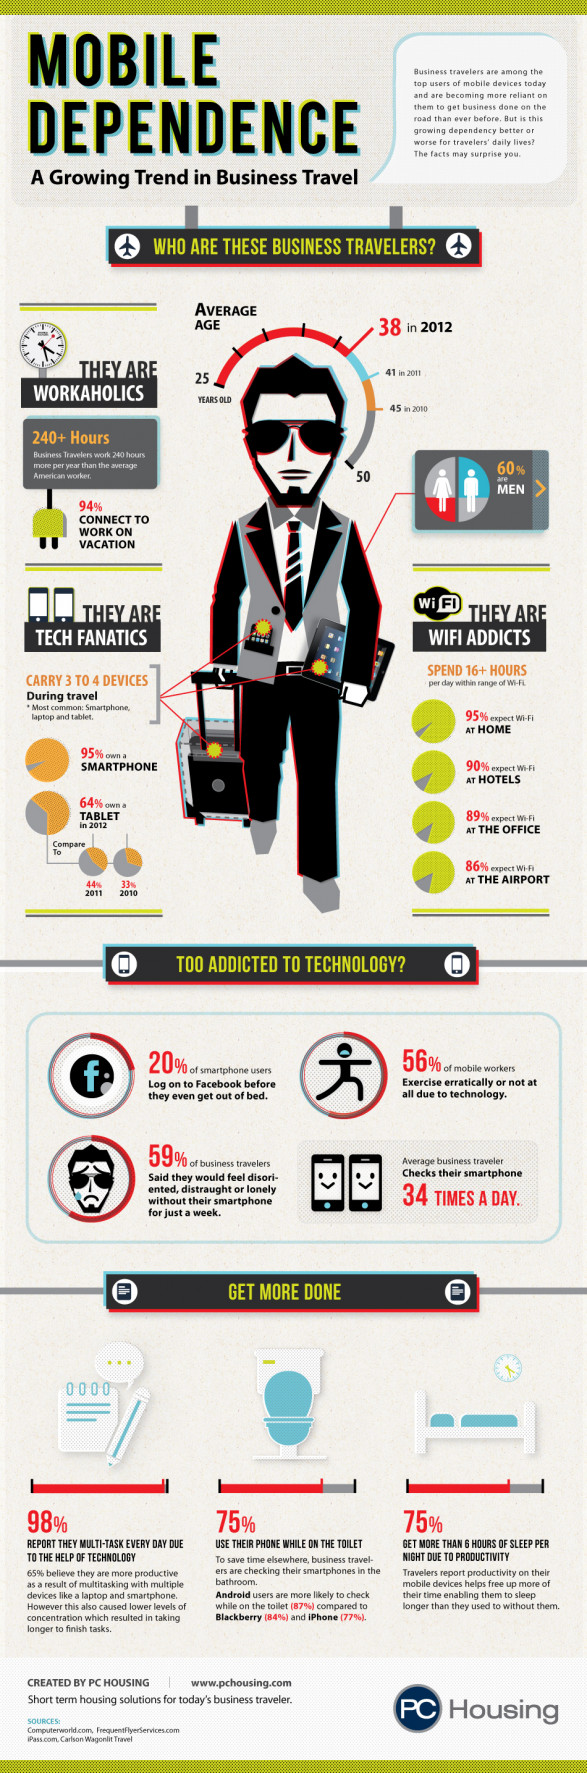 Mobile Dependence: A Growing Trend in Business Travel